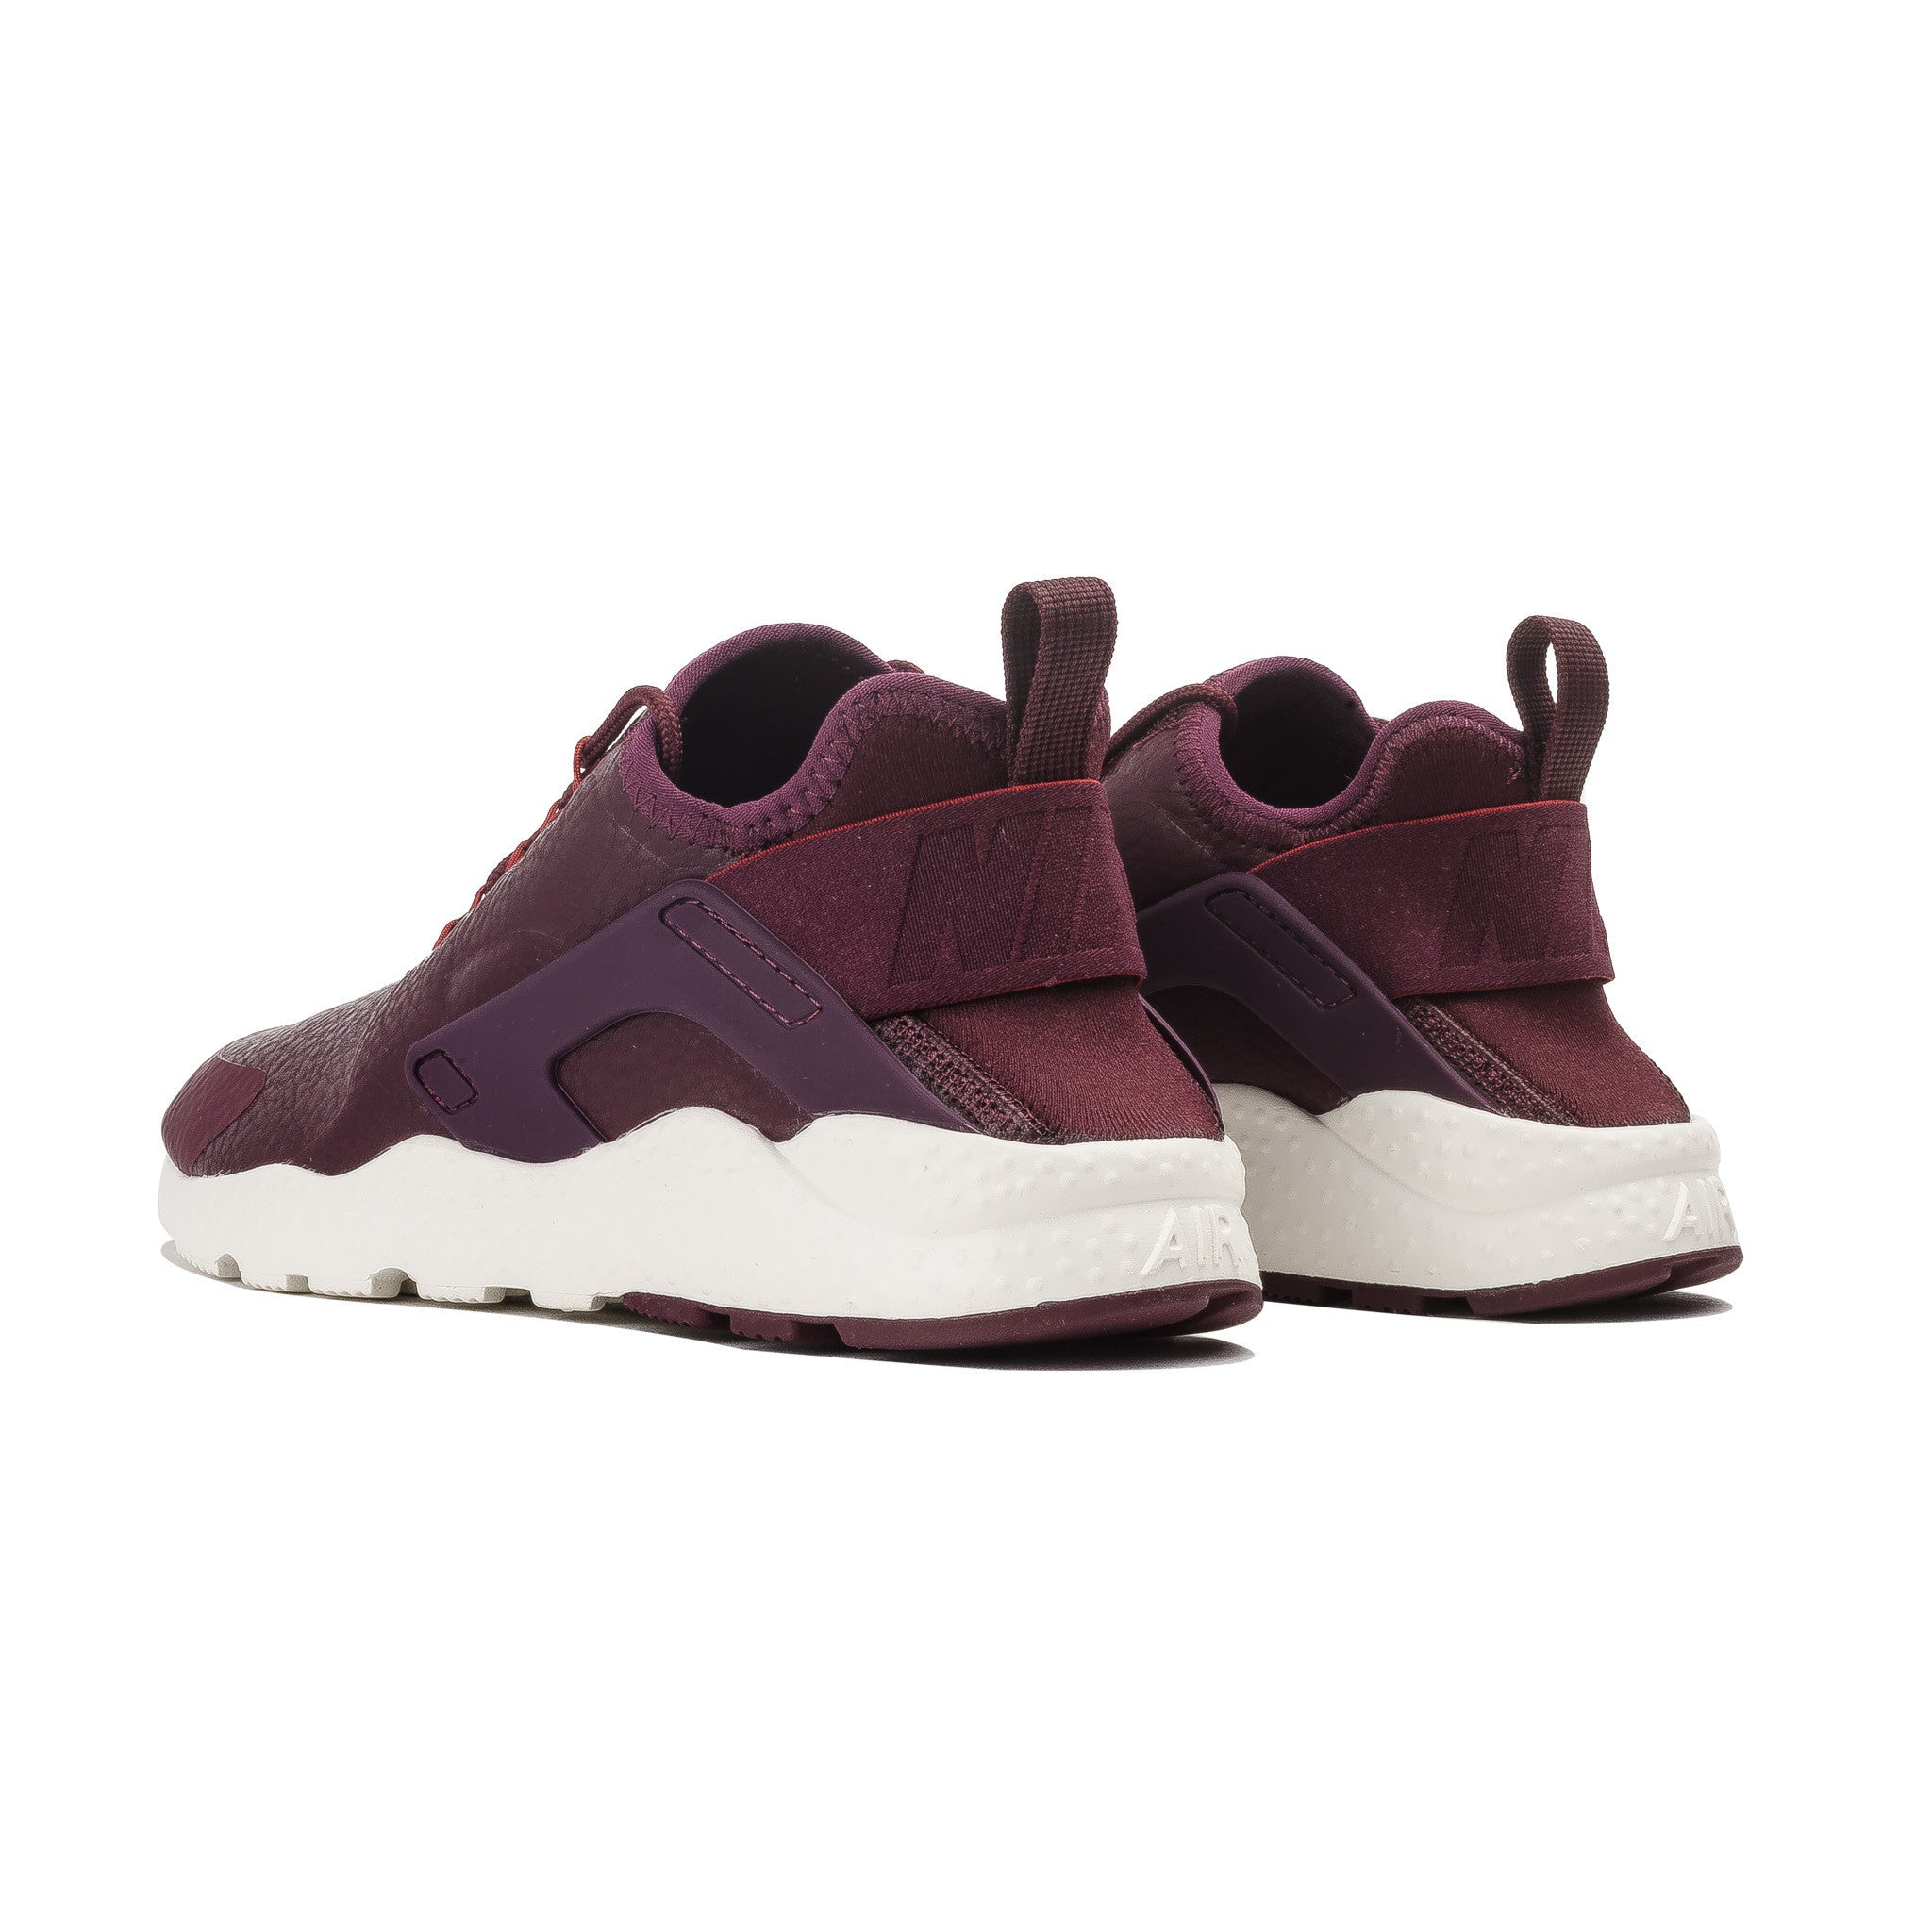 W Air Huarache Run Ultra PRM 859511-600